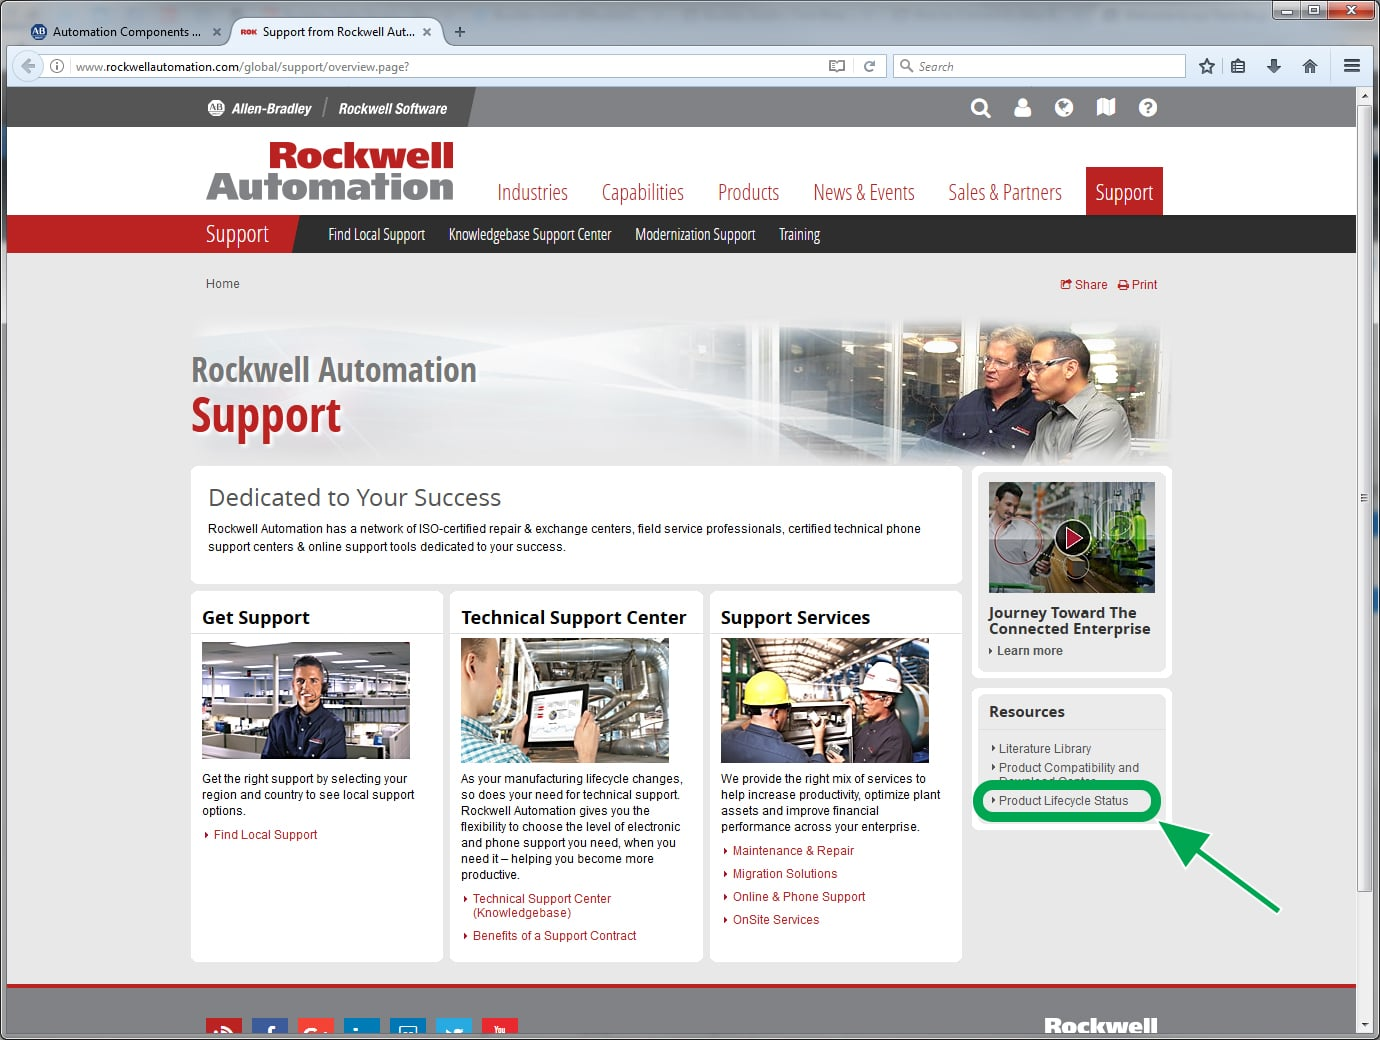 Rockwell Automation Support page